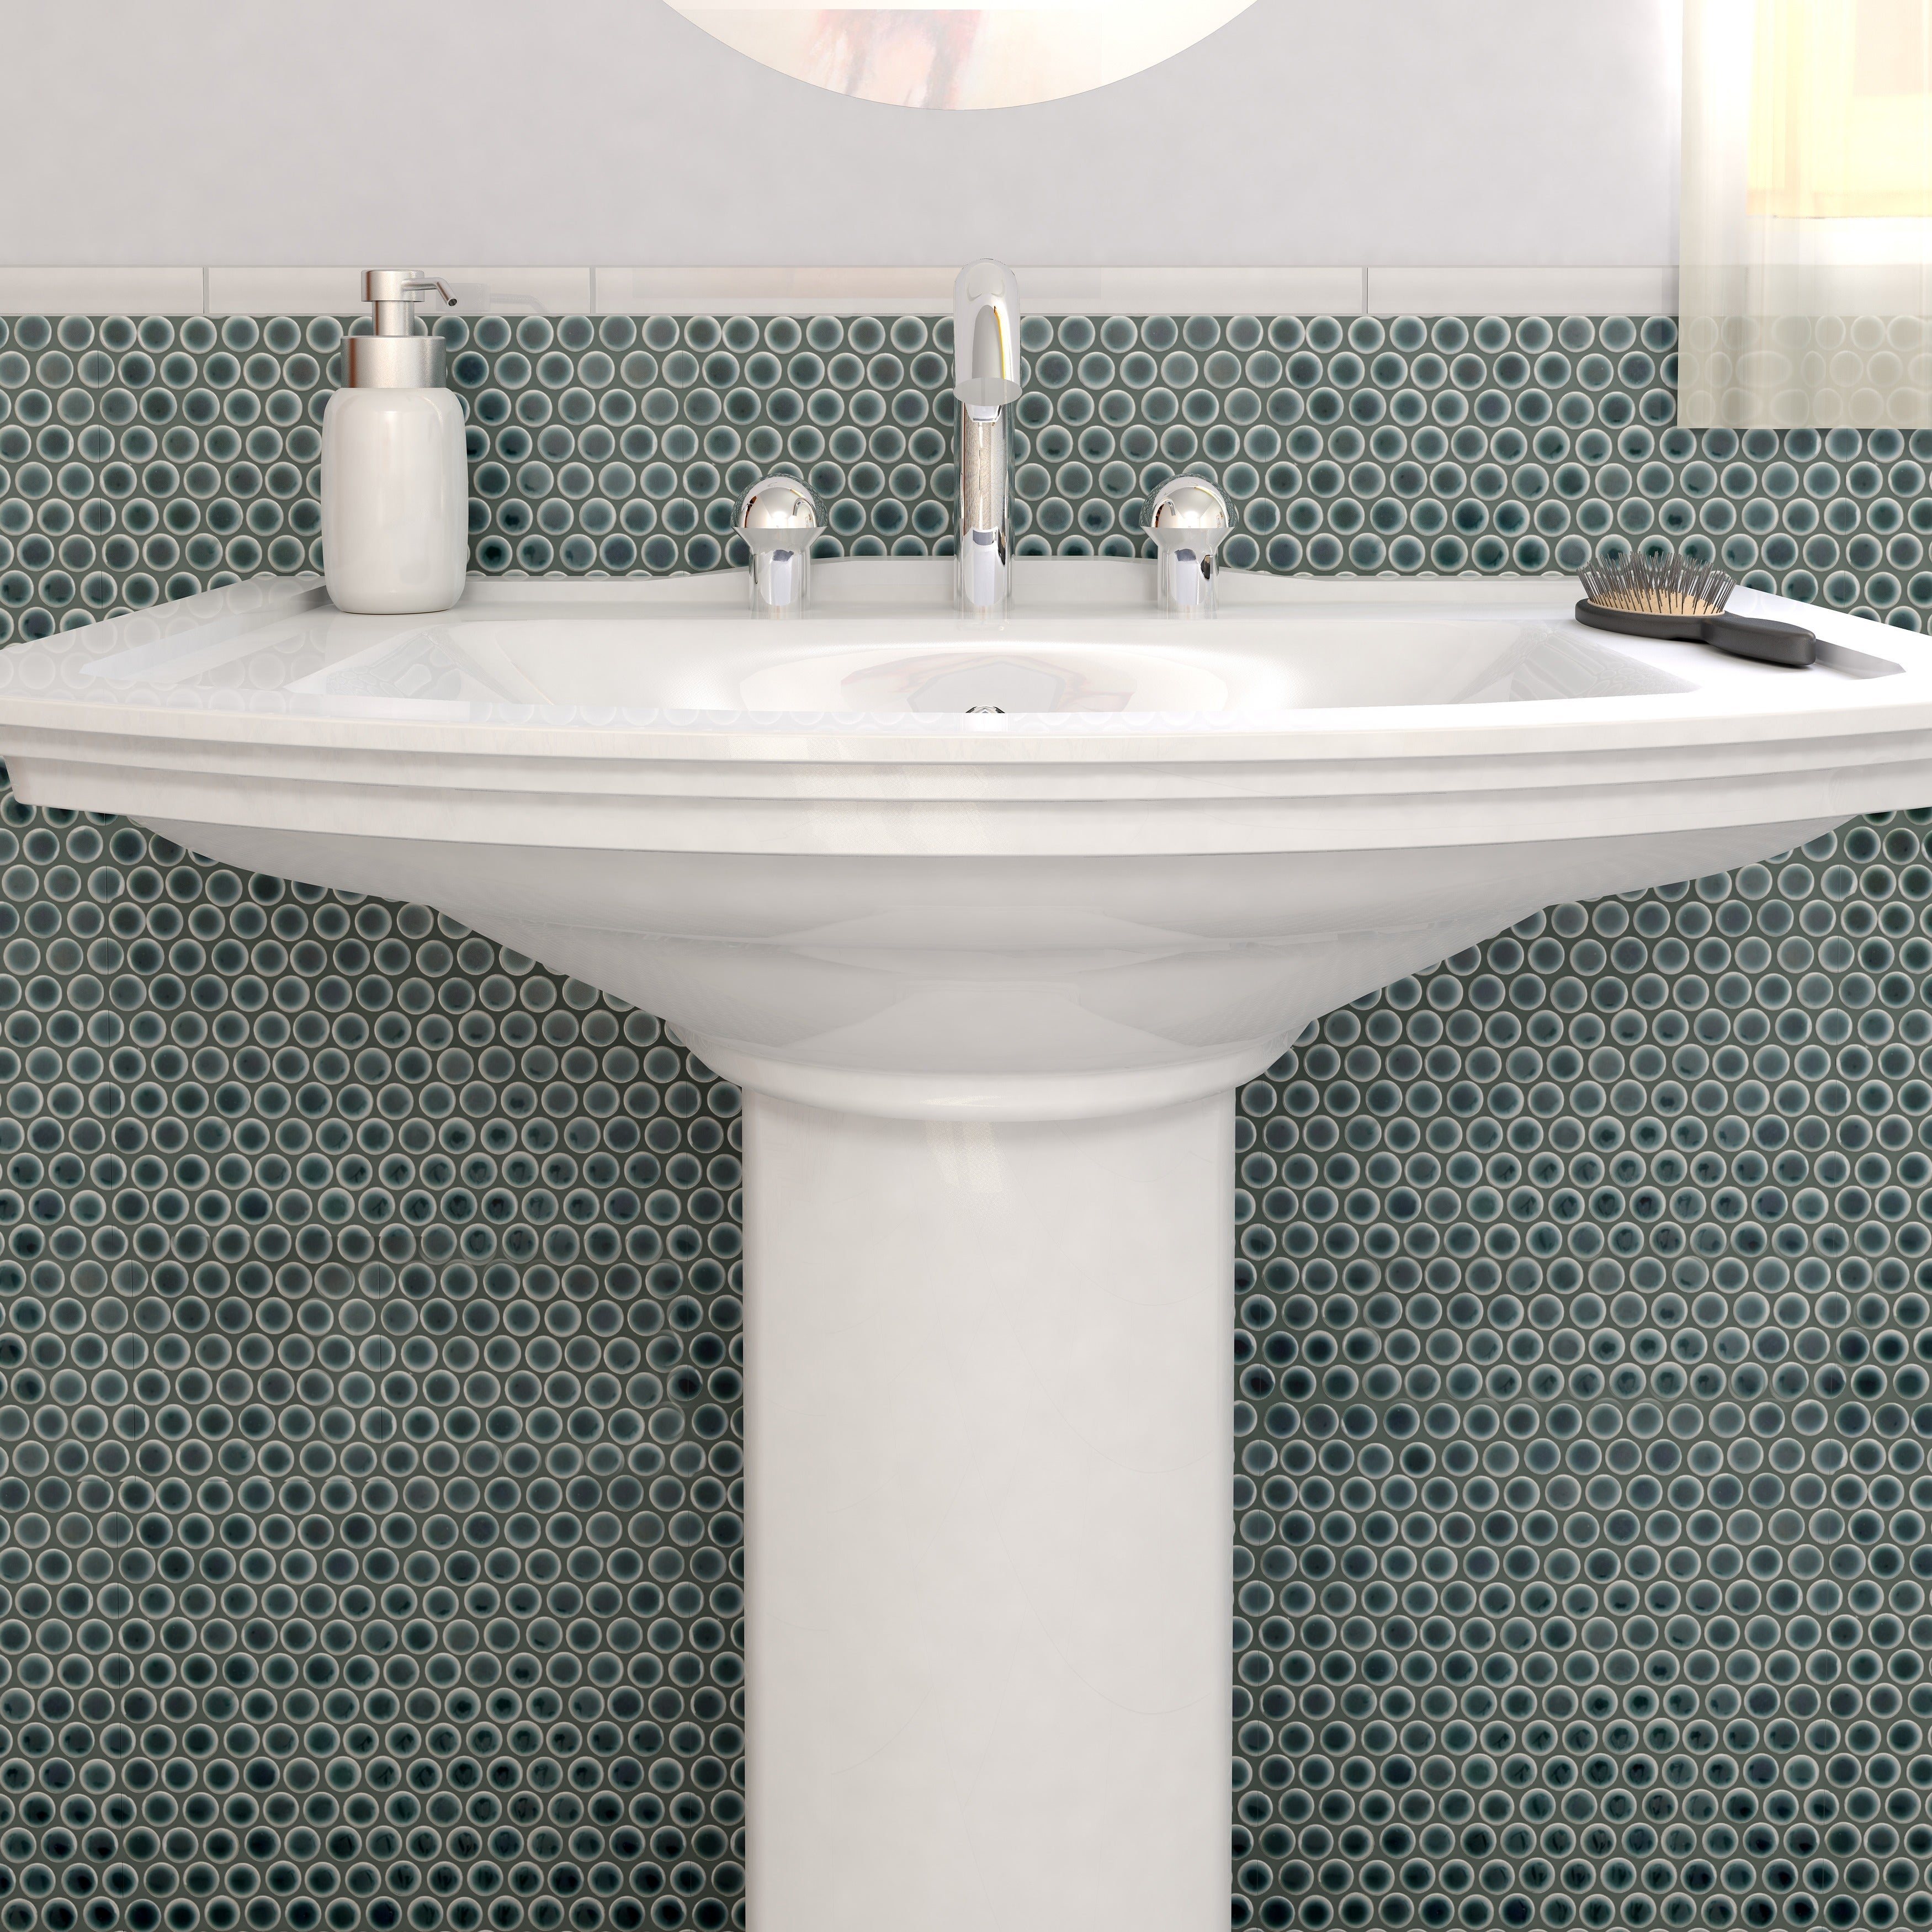 SomerTile 12 x 12.625-inch Penny Emerald Porcelain Mosaic Floor and Wall  Tile (Pack of 10) - Free Shipping On Orders Over $45 - Overstock.com -  15352590